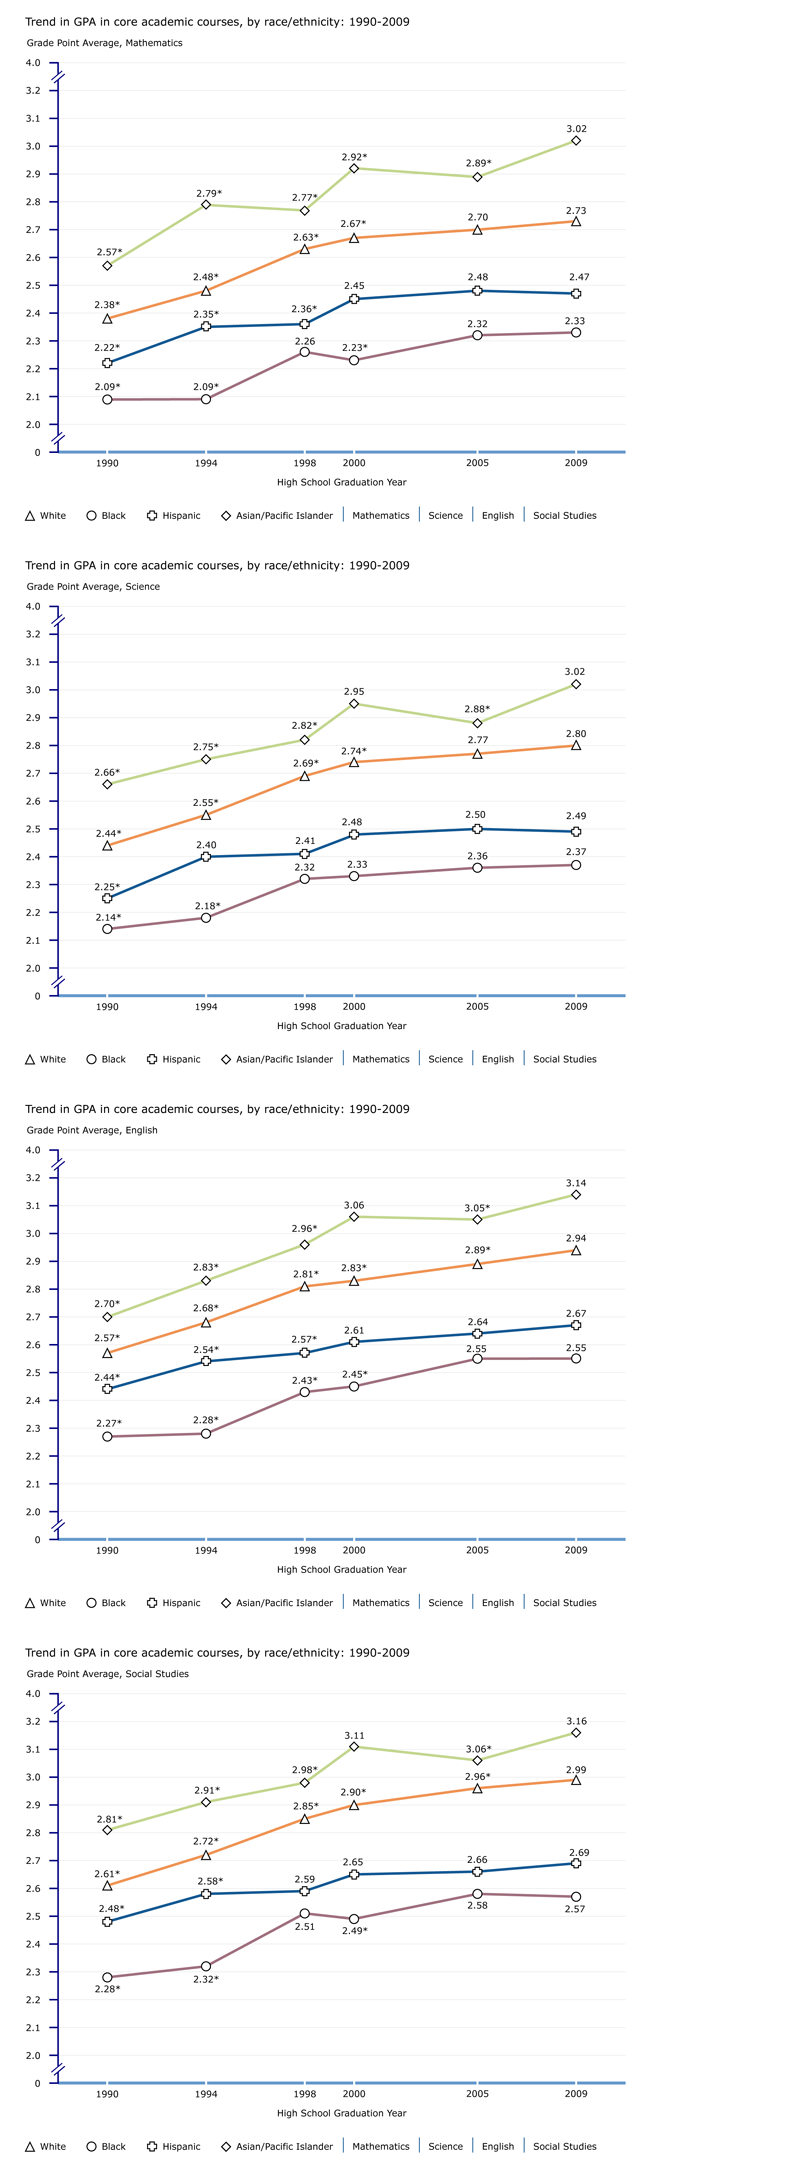 Trend in GPA in mathematics, by race/ethnicity: 1990-2009